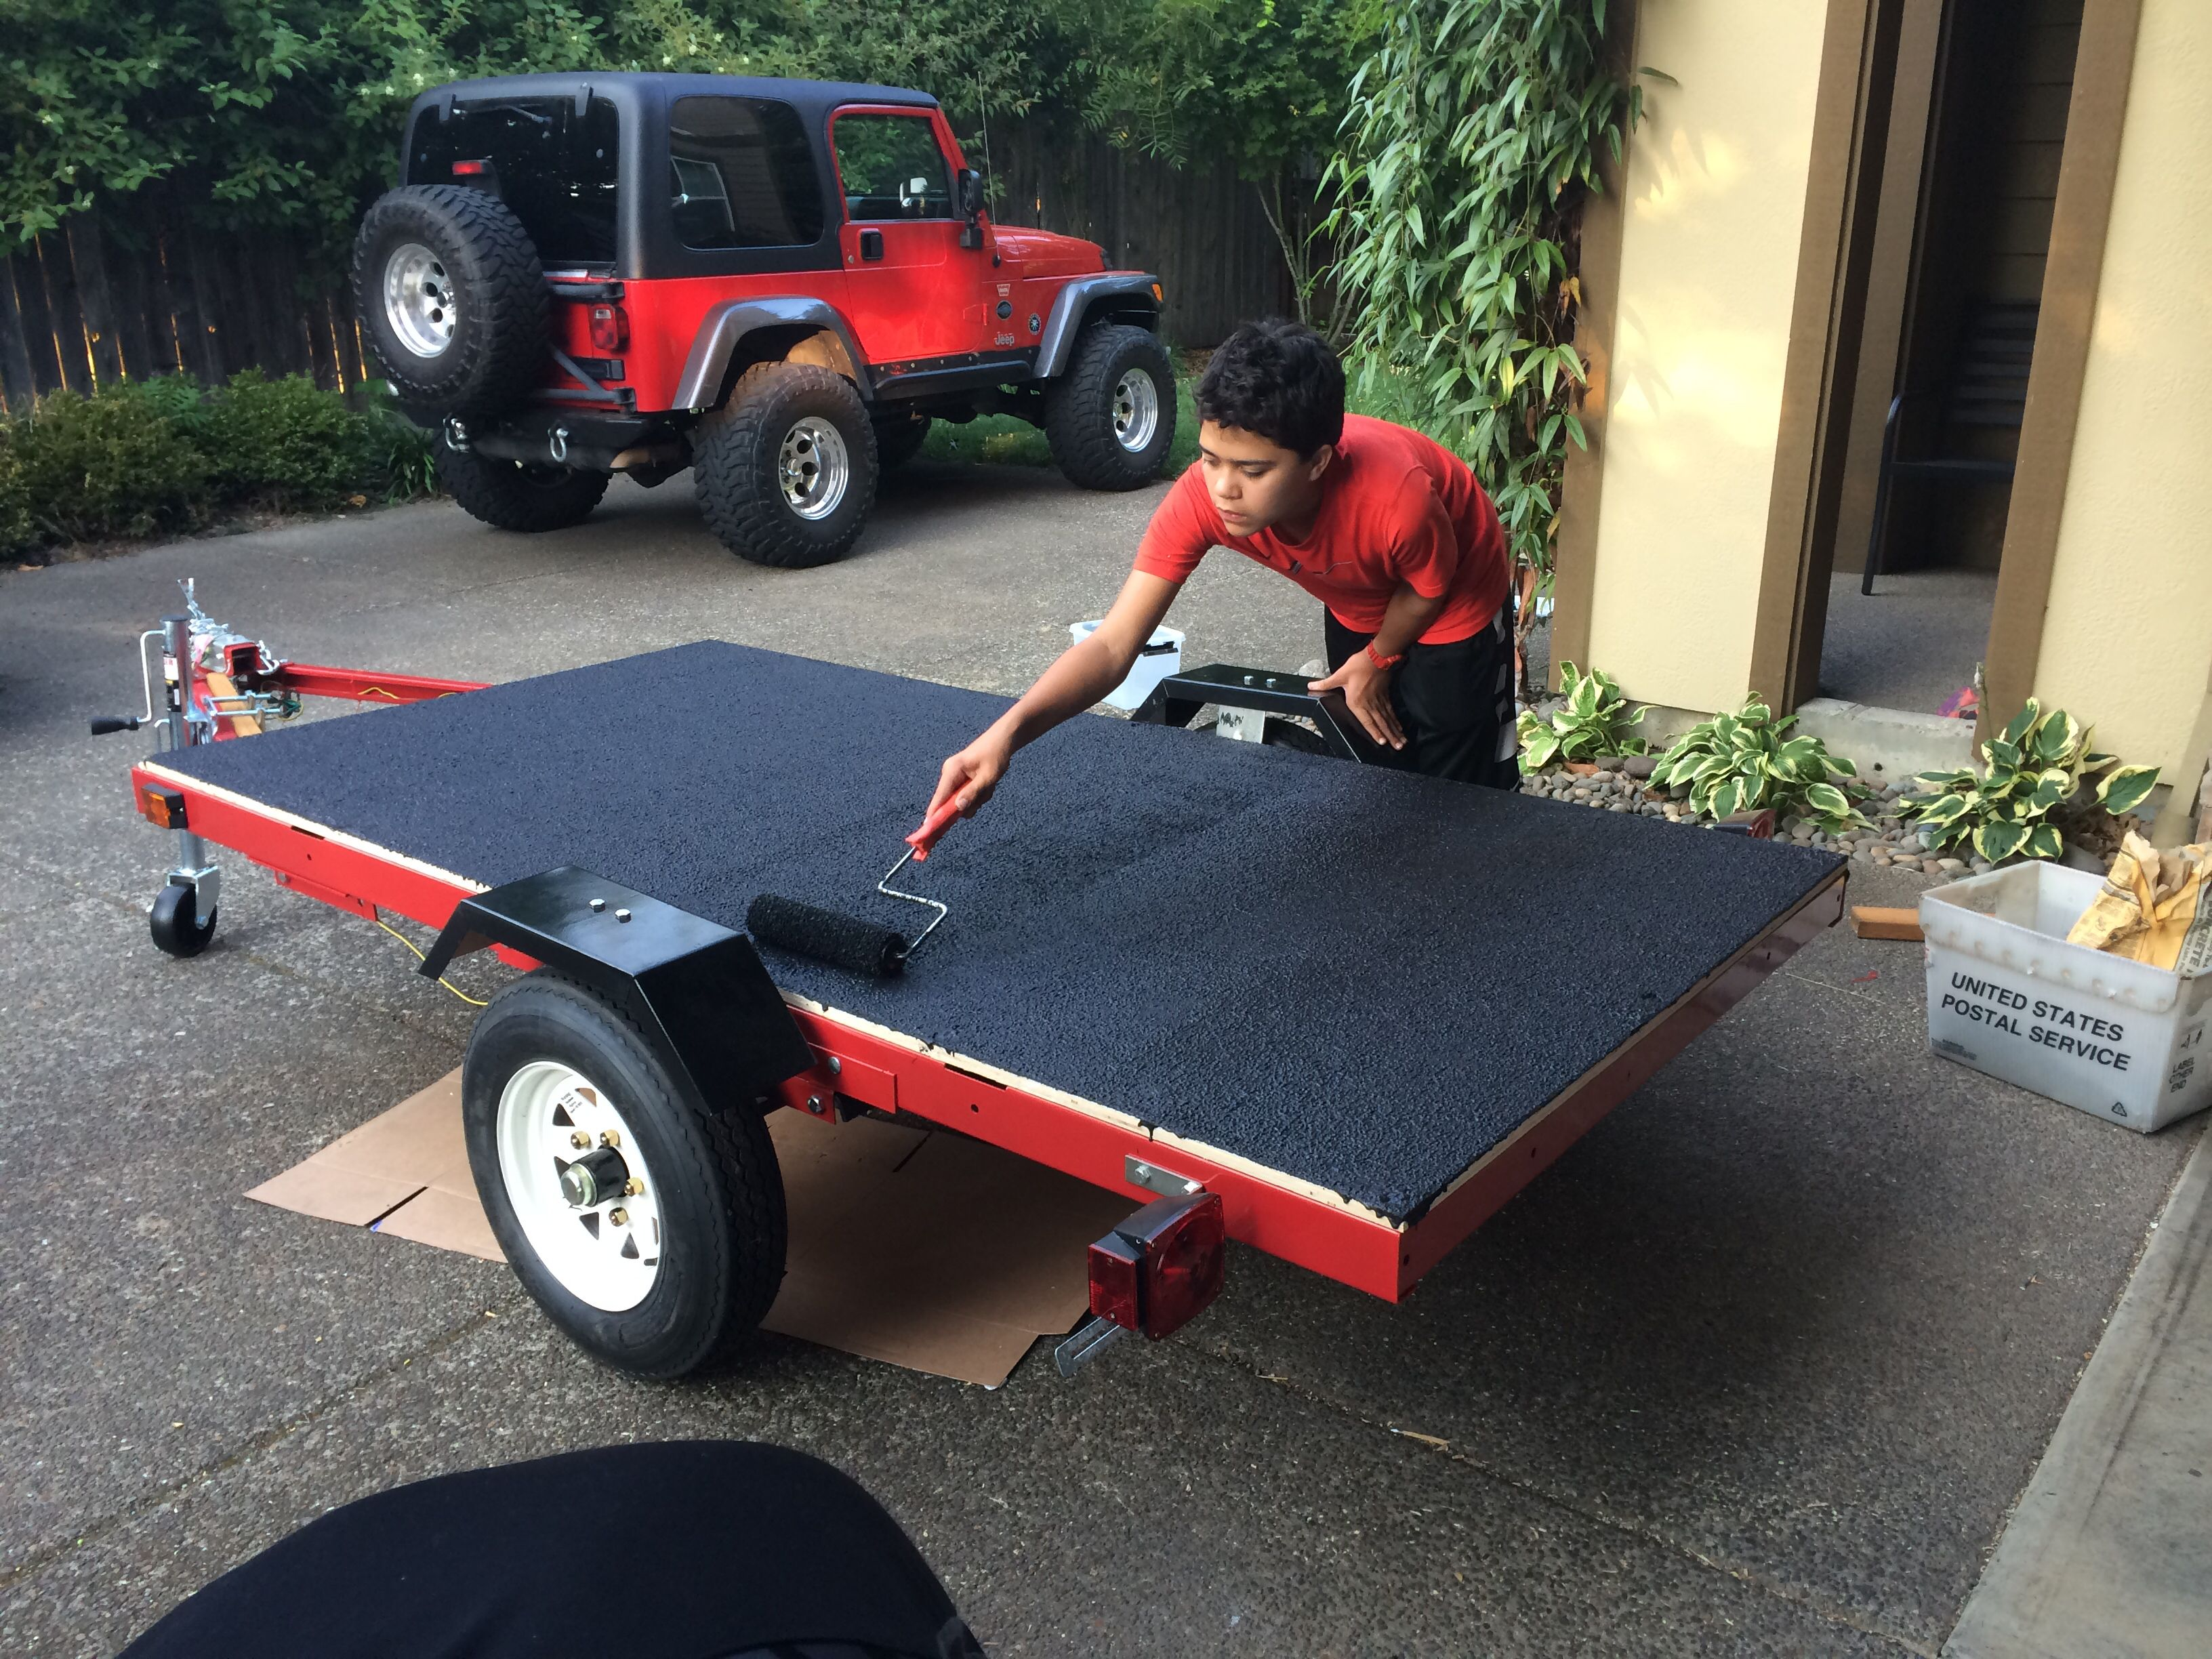 medium resolution of harbor freight trailer with deck concrete restore 10x rust oleum textured paint tinted black 1 gallon this is the same trailer used to create teardrop